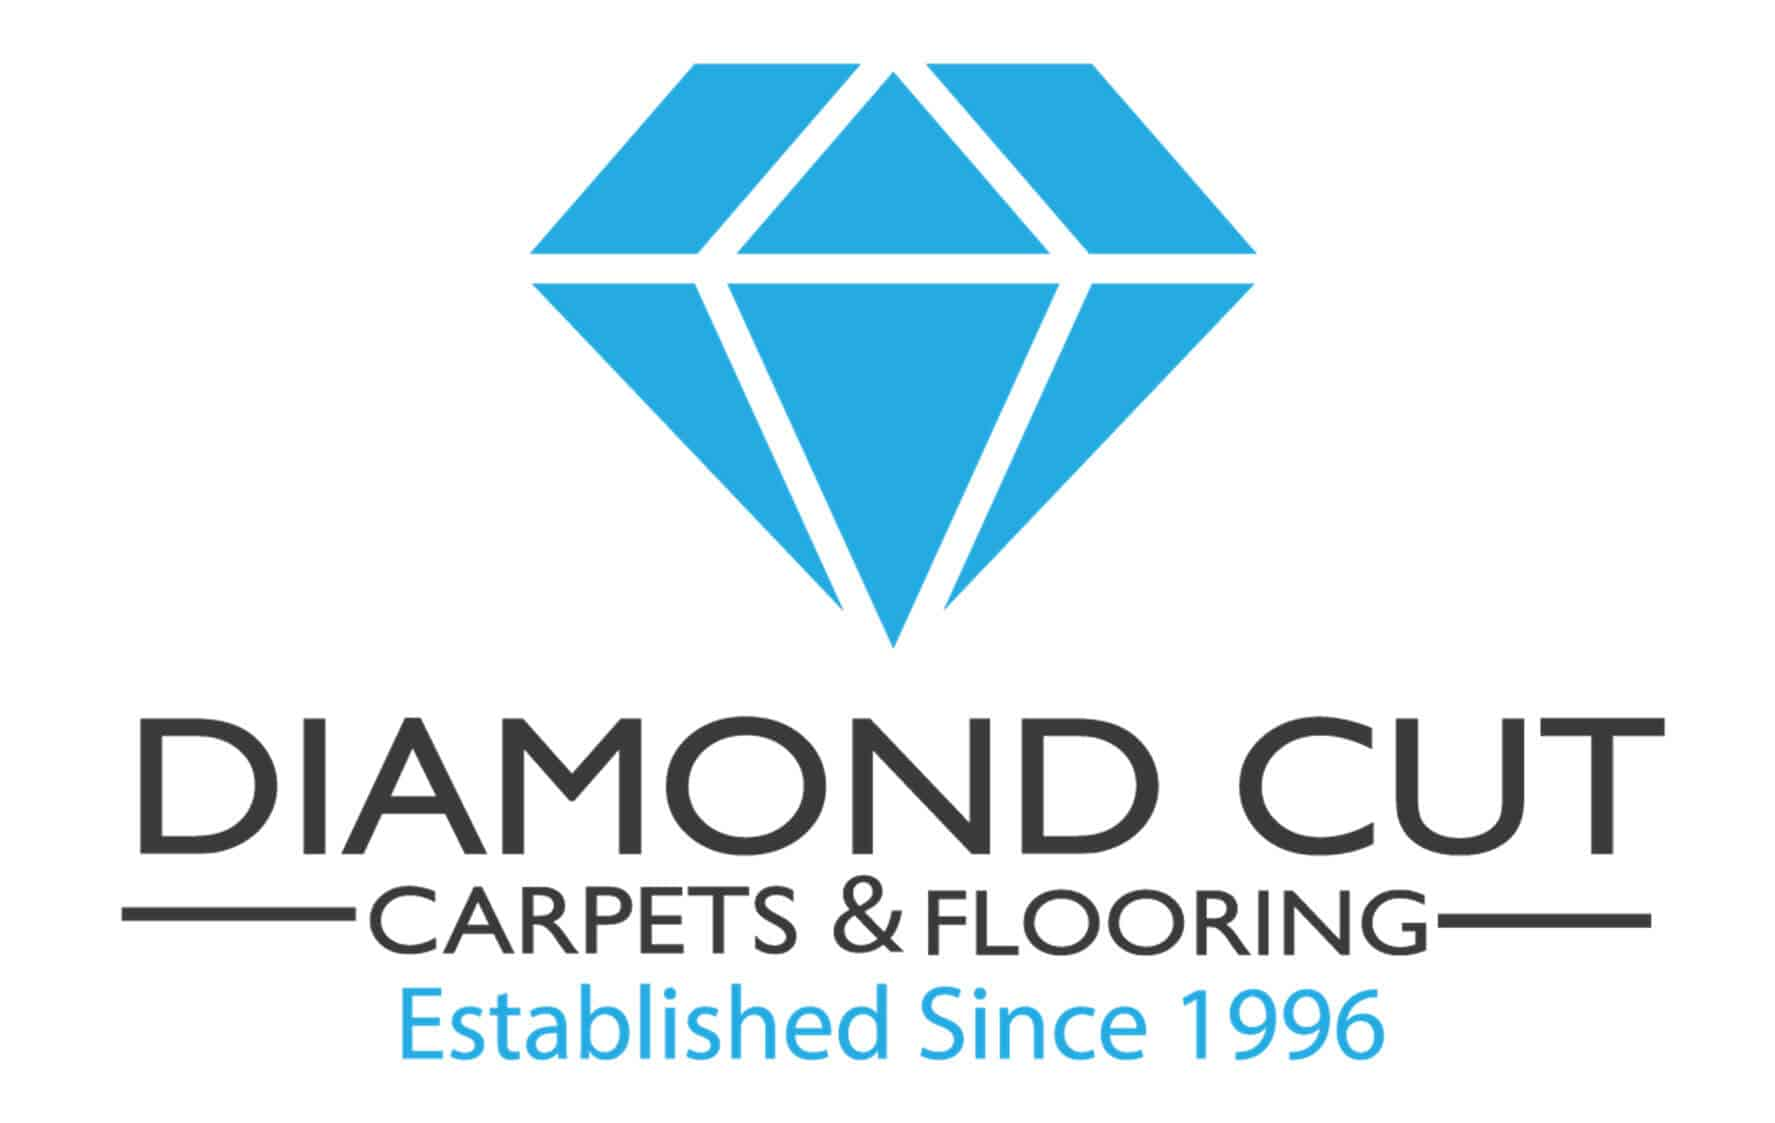 Diamond Cut Carpets and Flooring